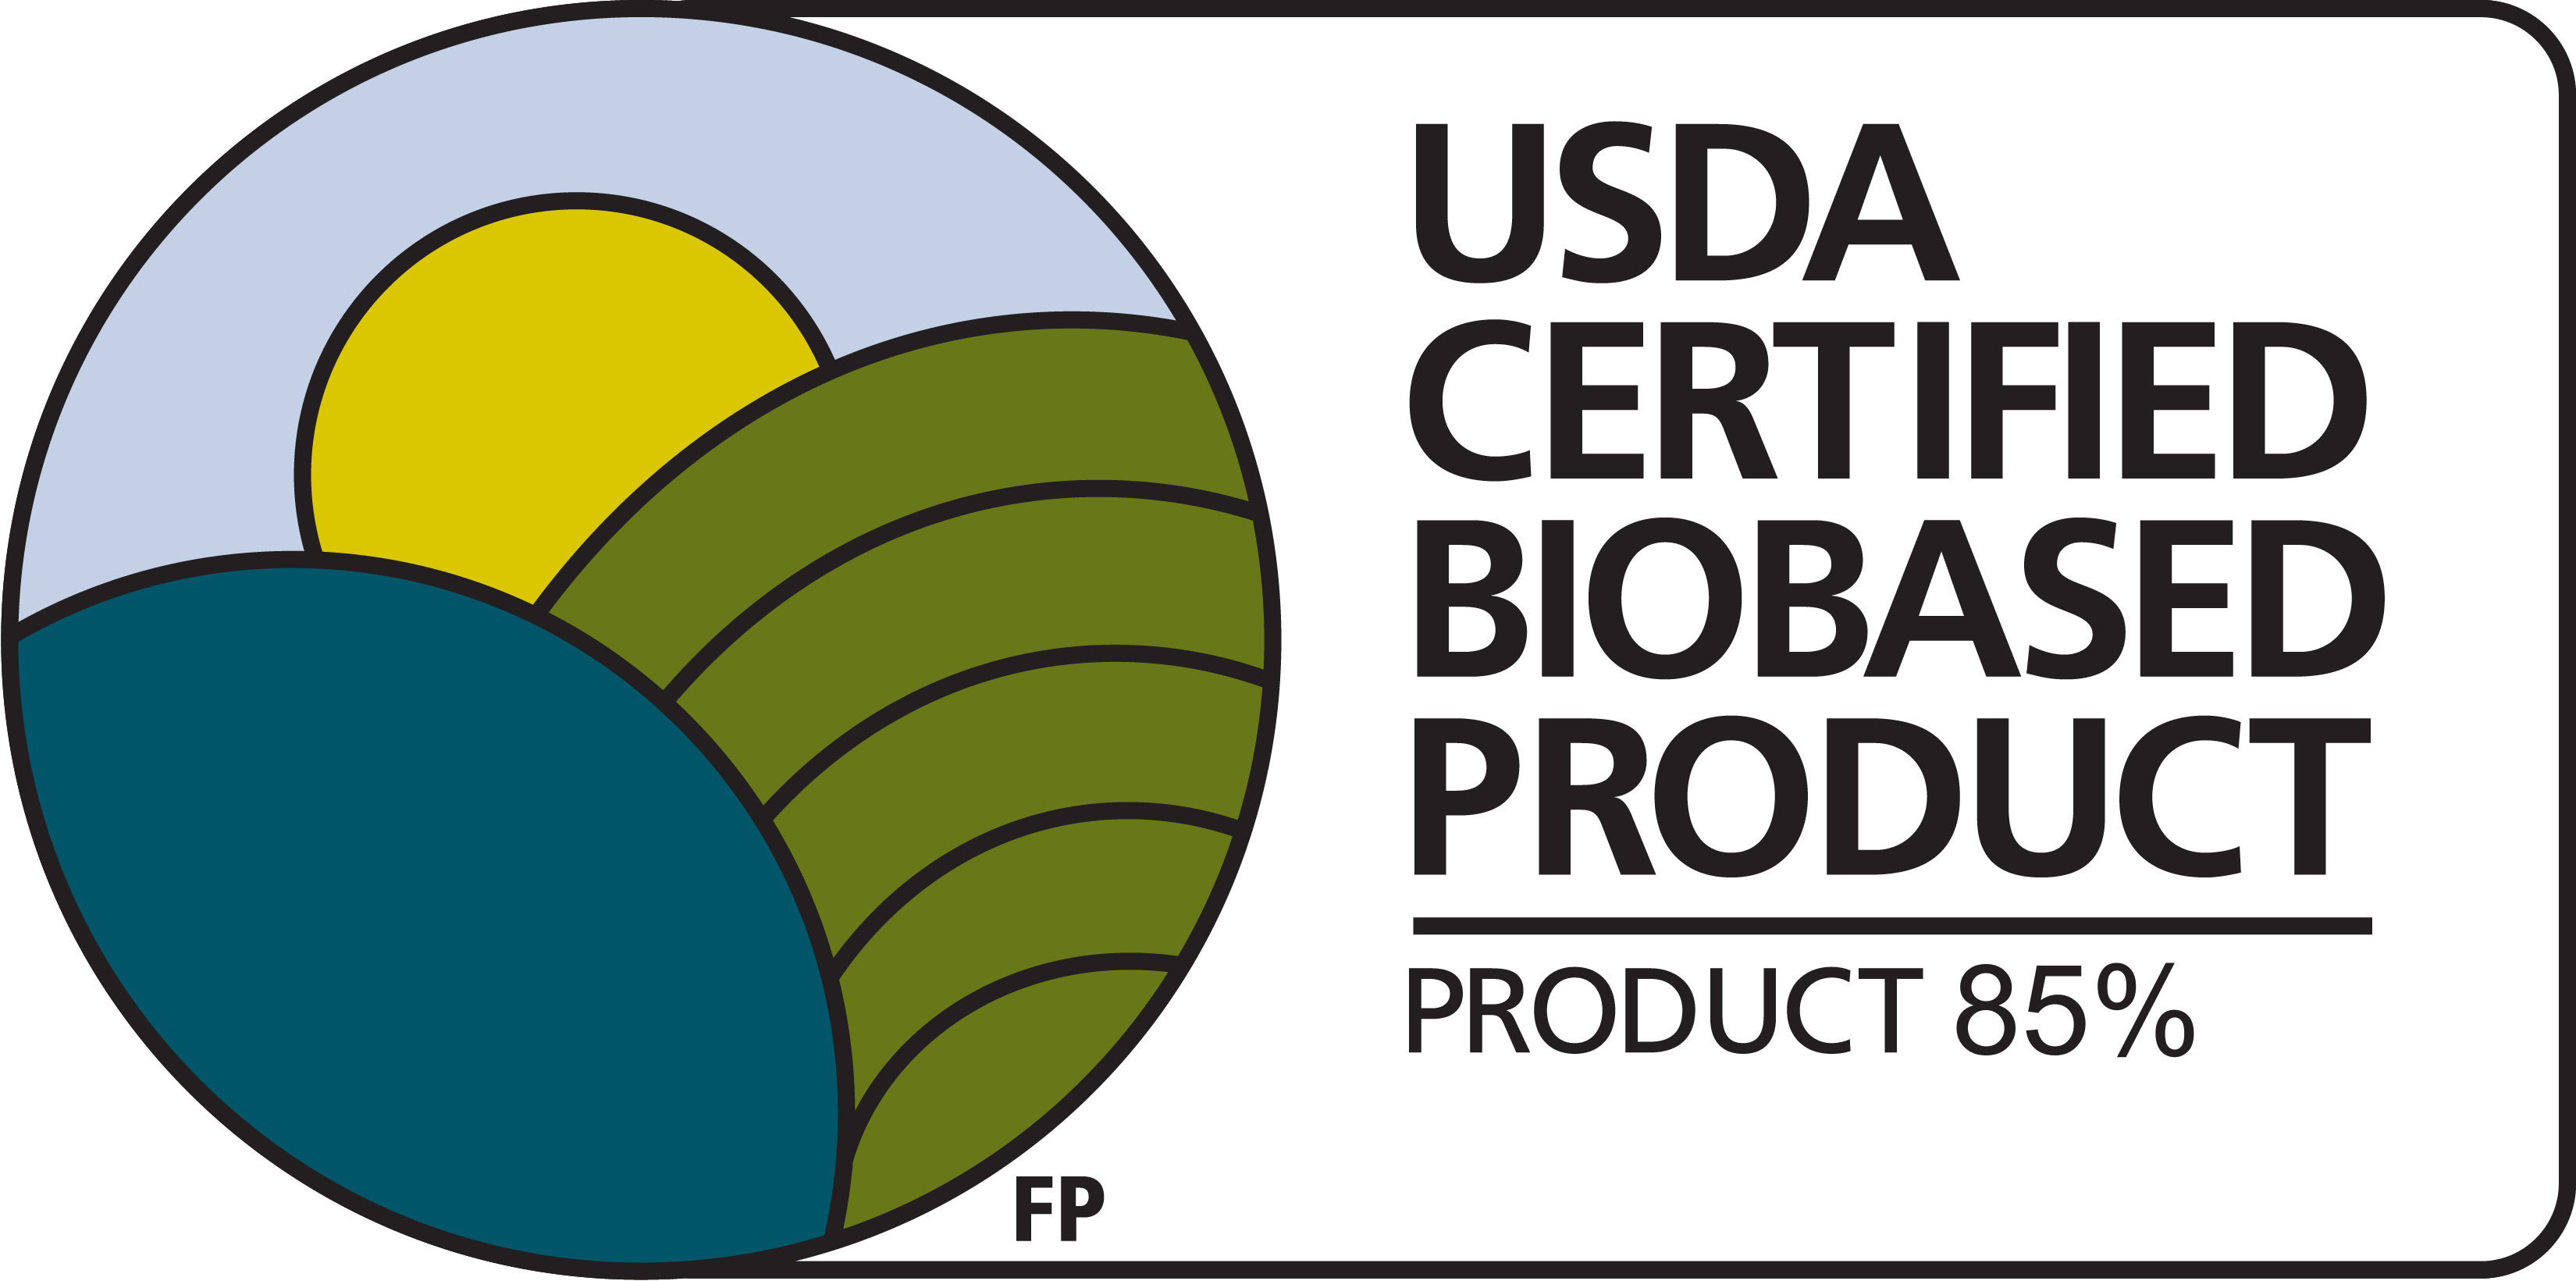 Honest Conditioner is a USDA Certified Biobased Product Label shown